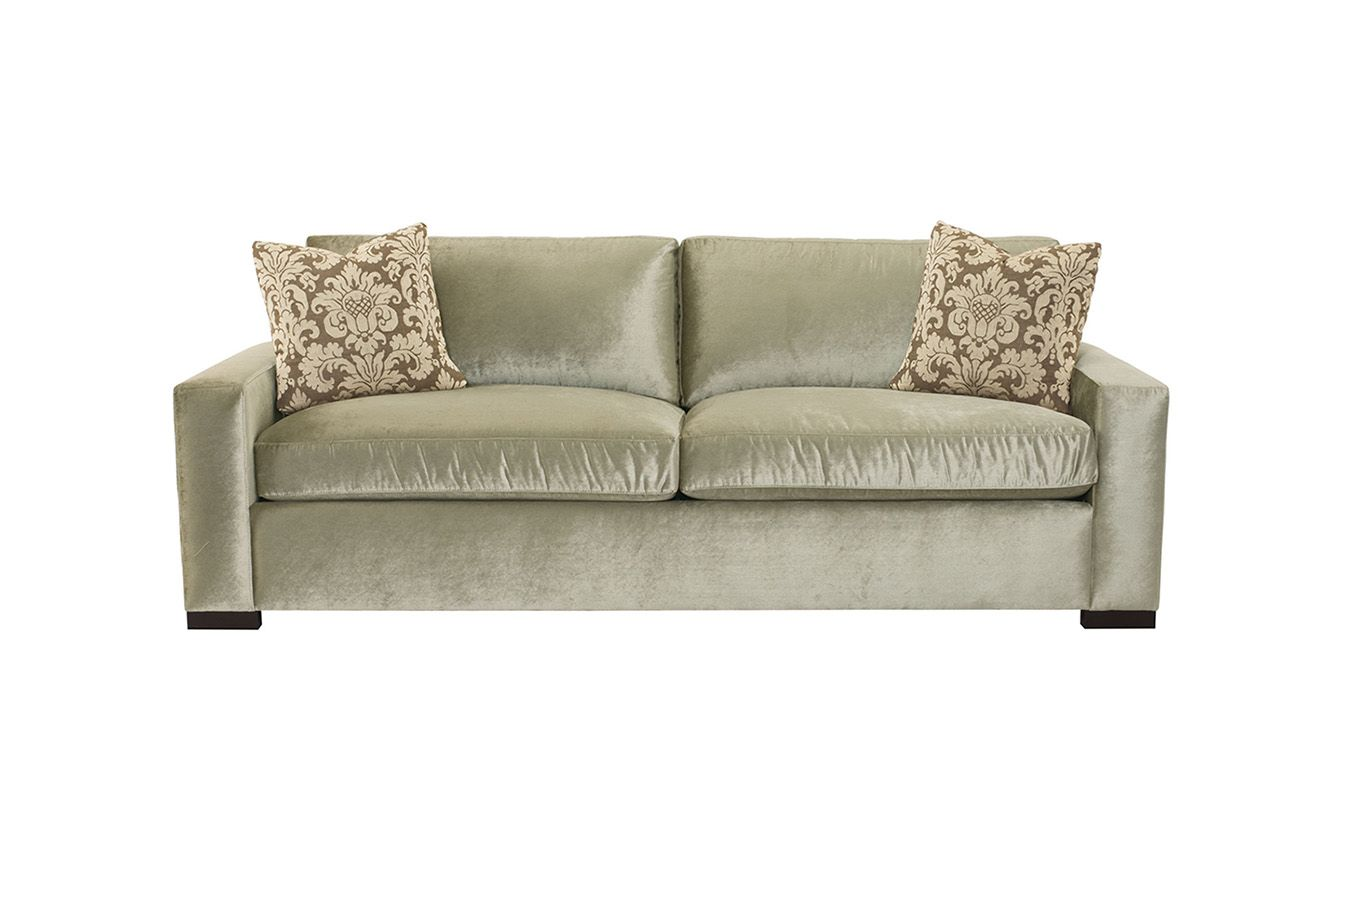 Bernhardt jefferson sofa set collier 39 s furniture expo for Bernhardt furniture